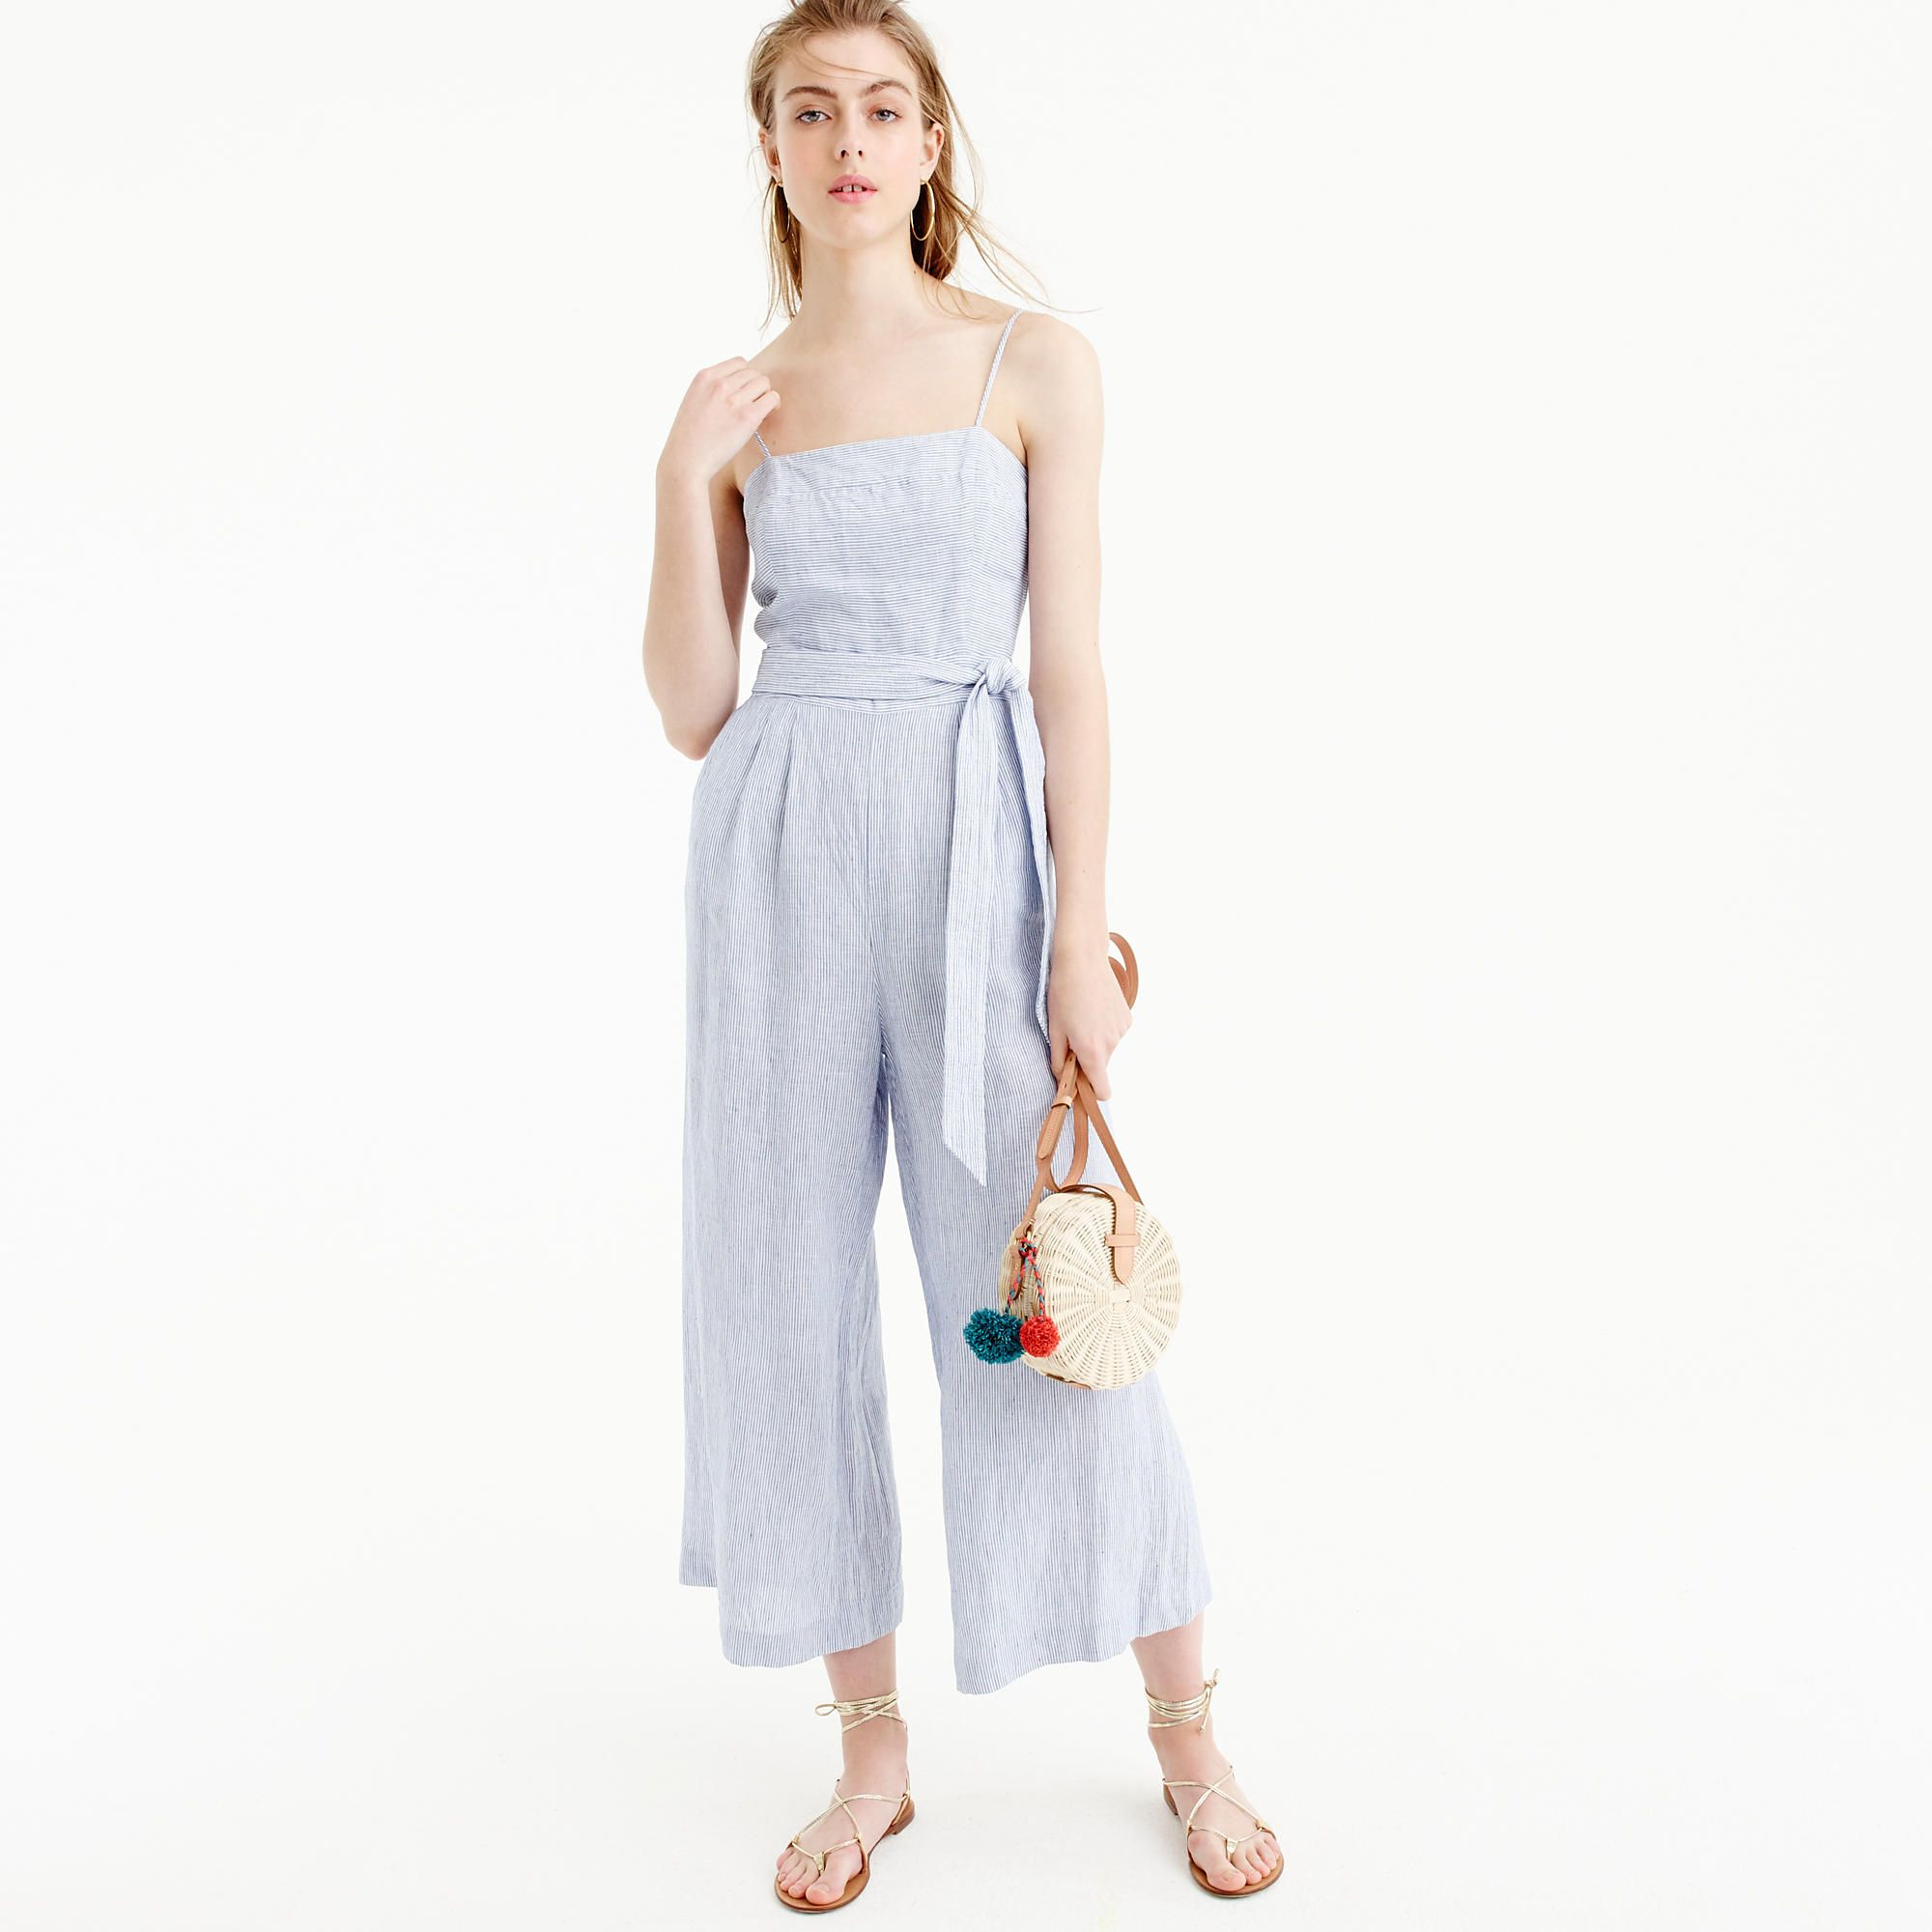 da829bd19606 Striped linen jumpsuit with tie